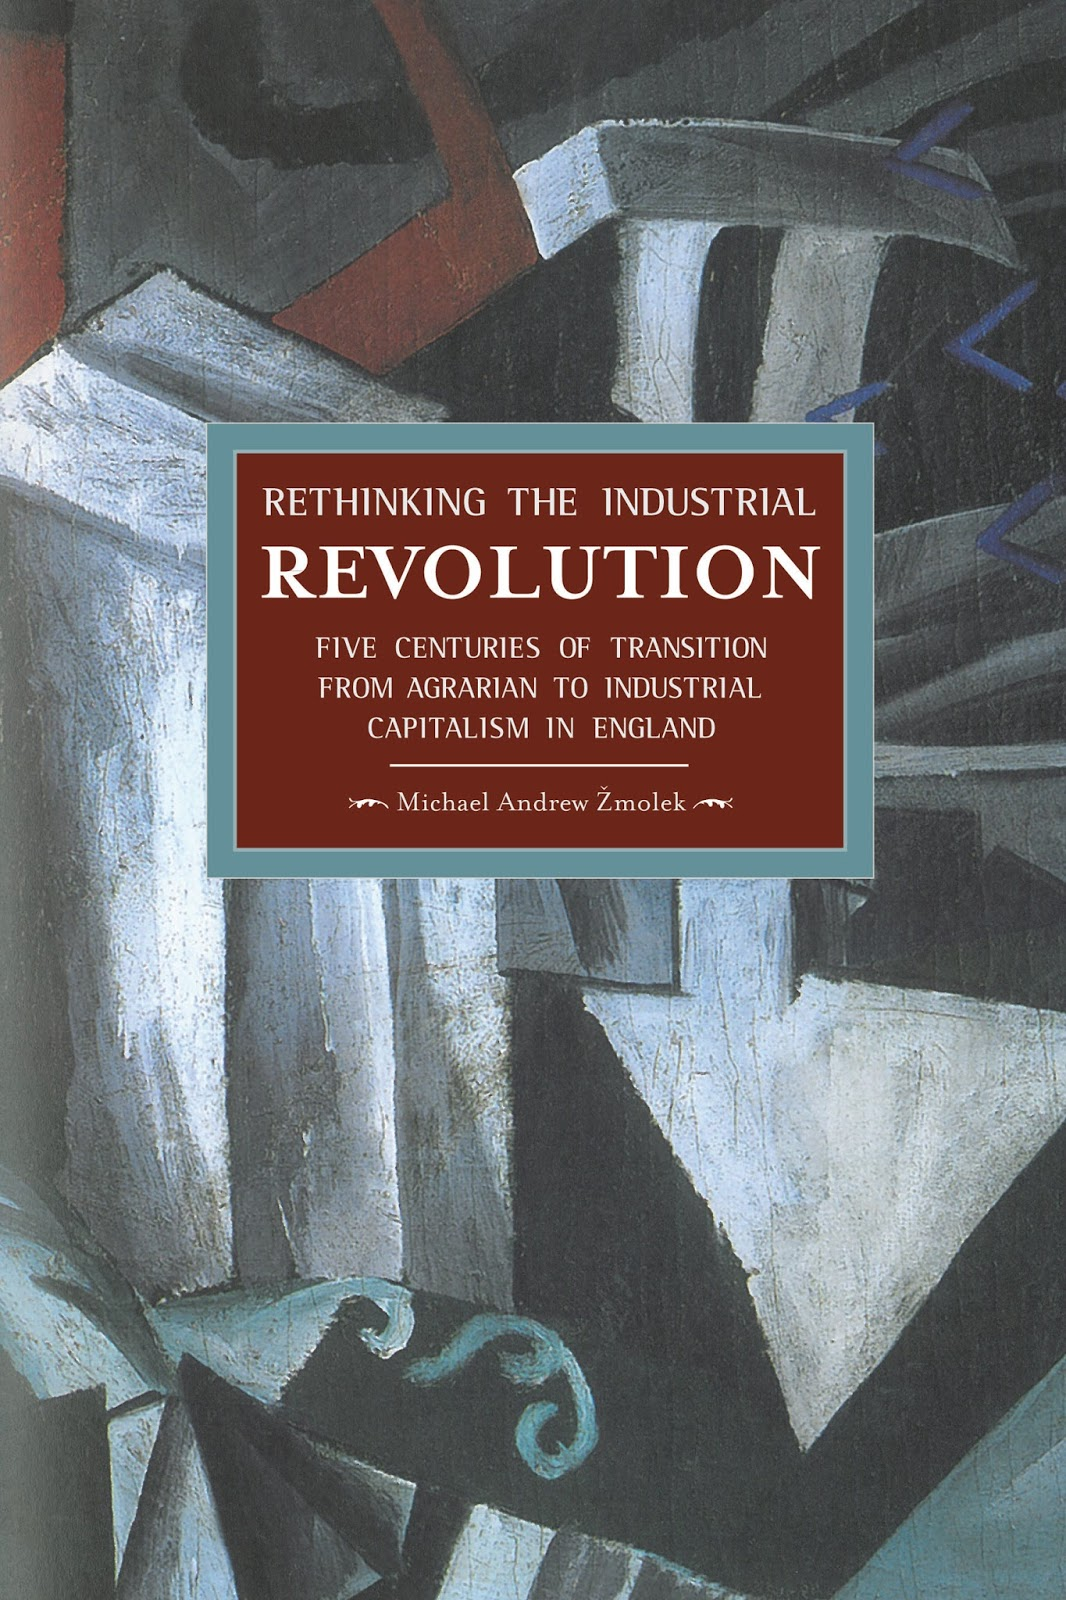 resolutereader michael andrew molek rethinking the industrial michael andrew 381molek rethinking the industrial revolution five centuries of transition from agrarian to industrial capitalism in england